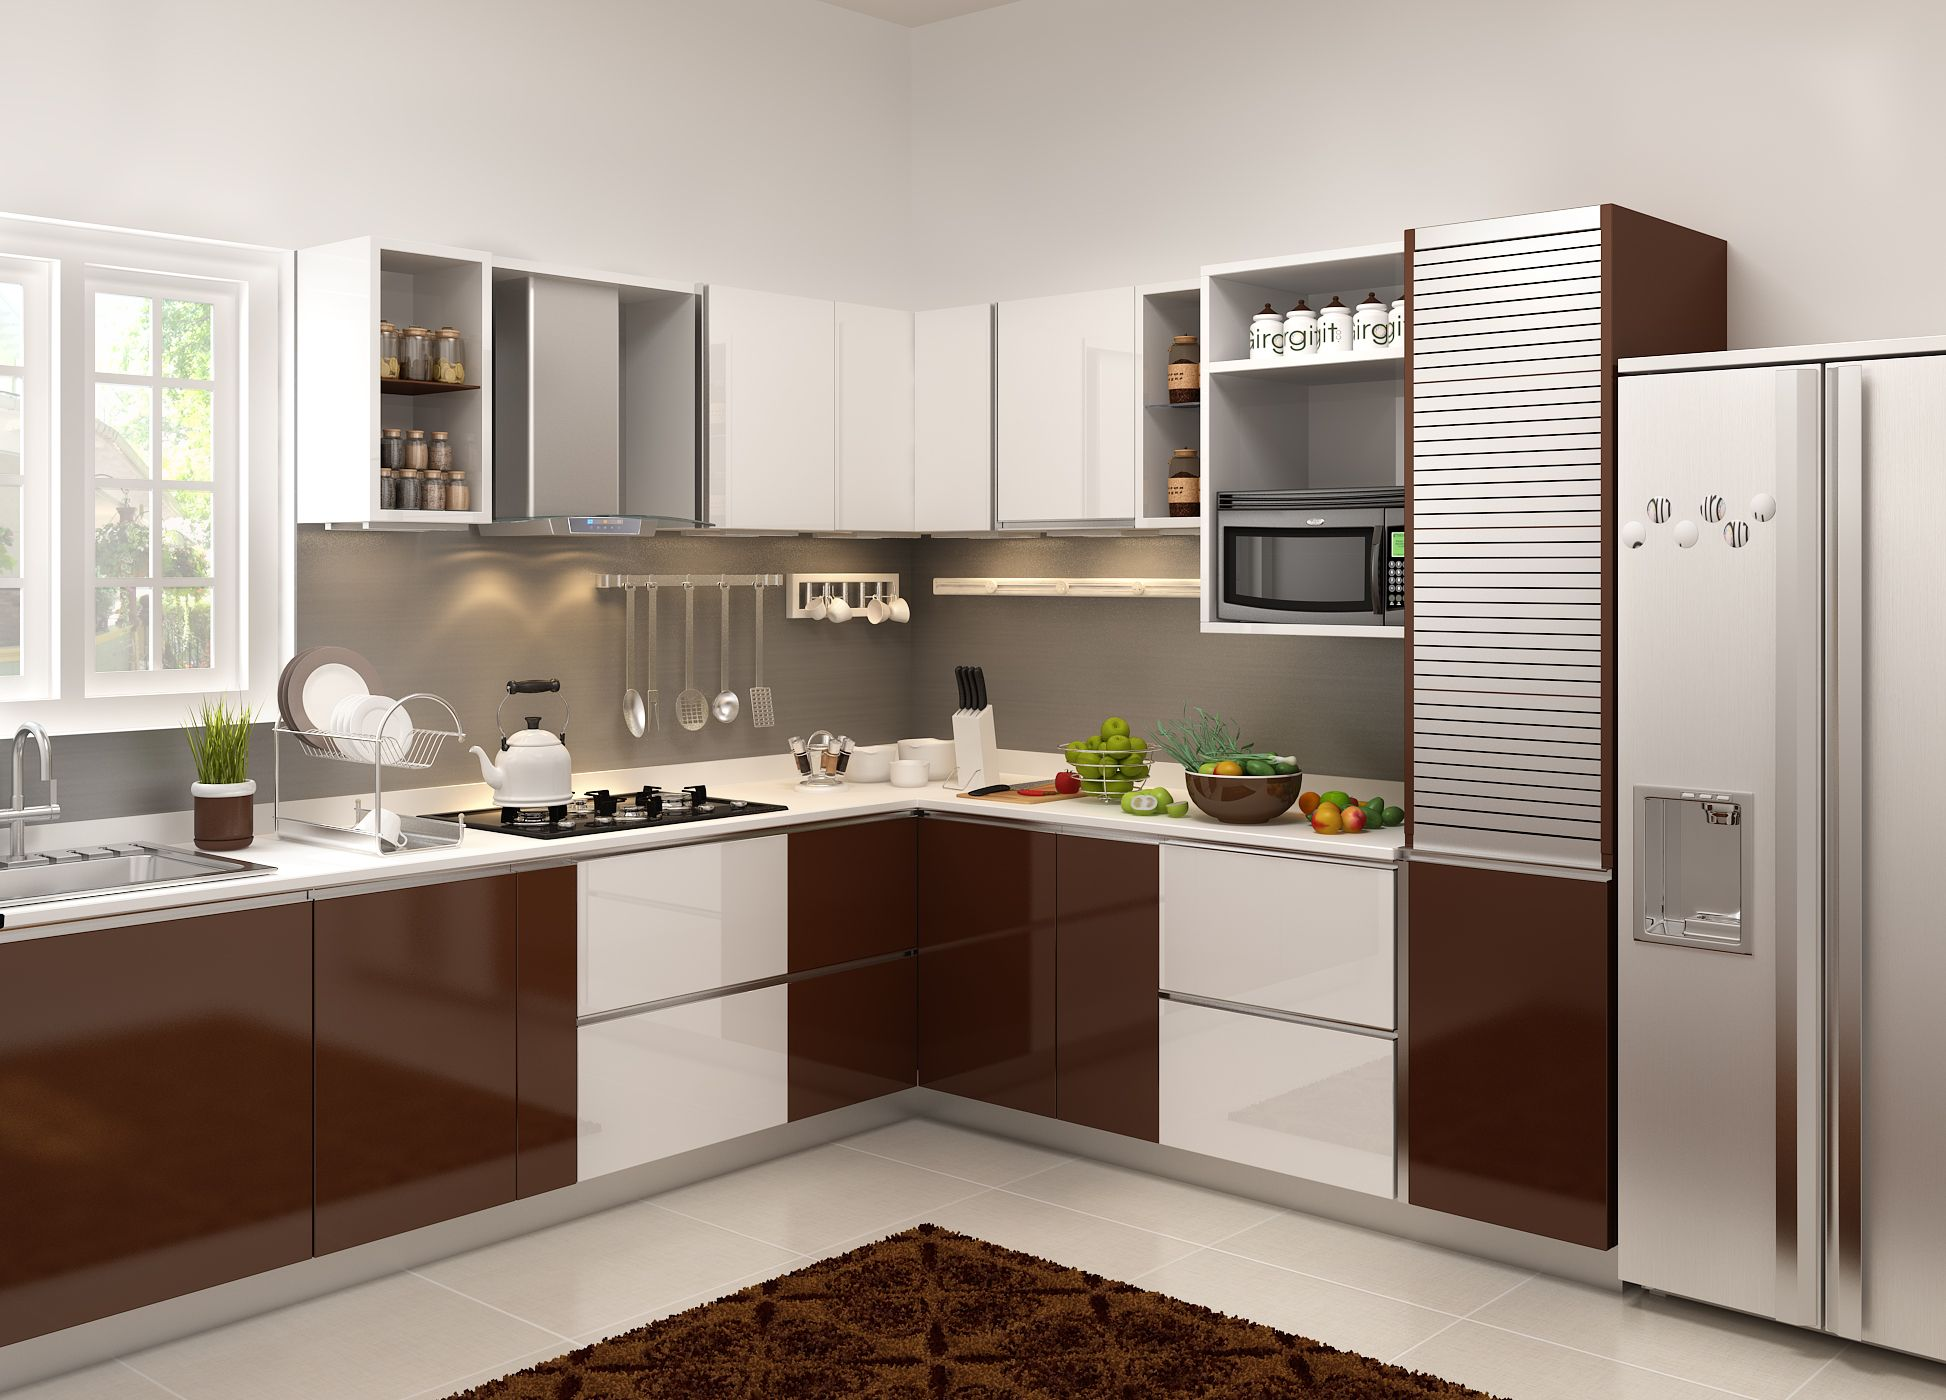 girgit is a interior designer in bangalore or it is a platform which